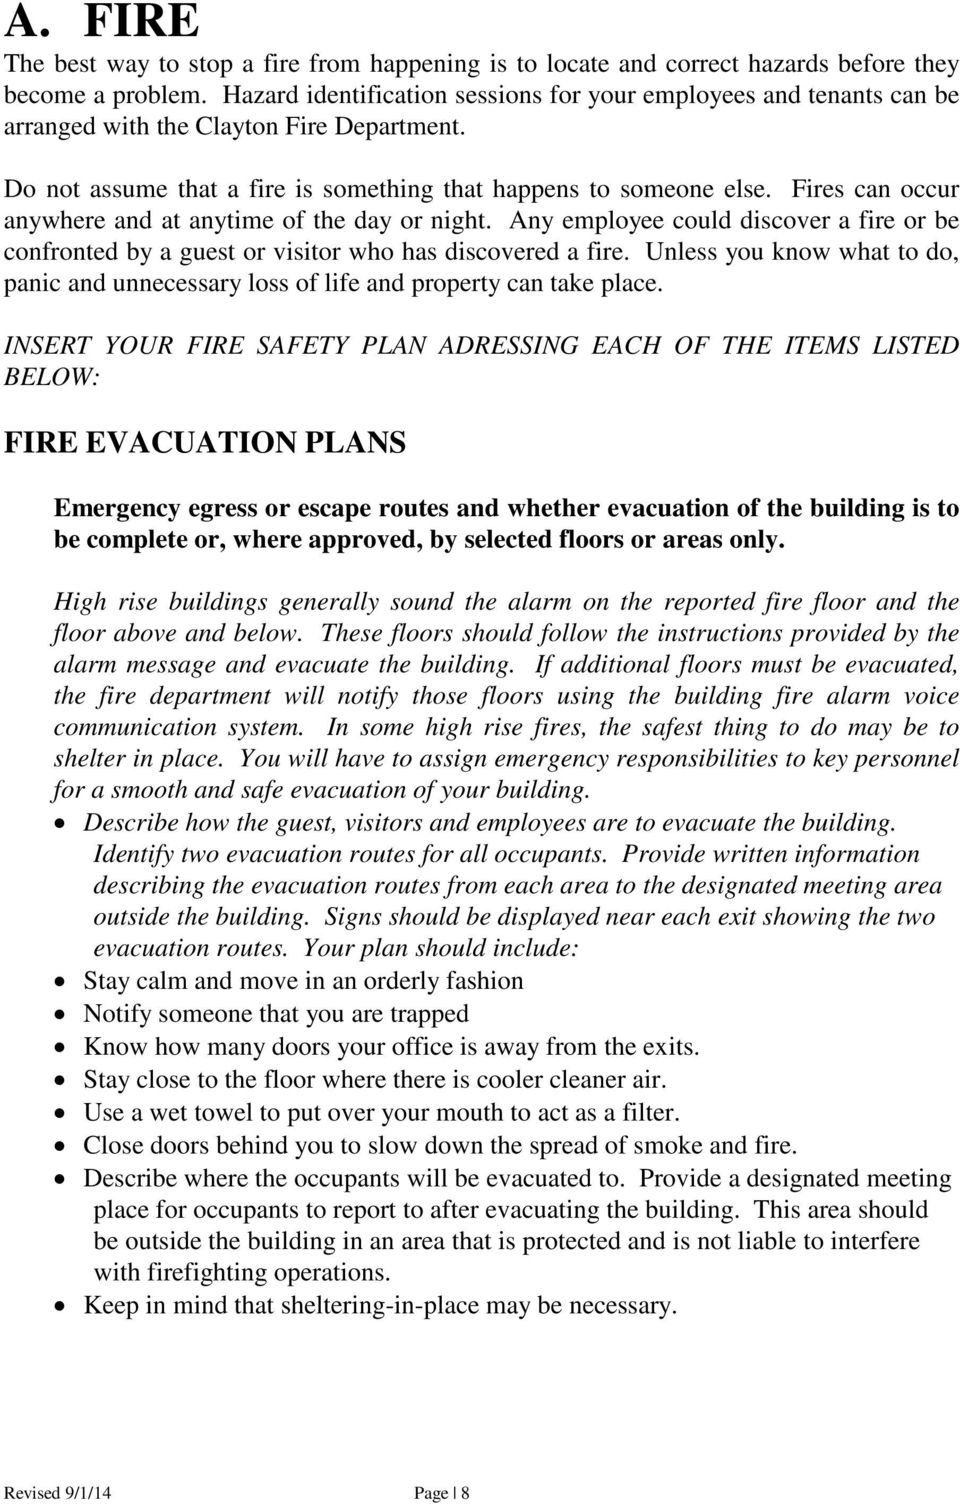 Fires can occur anywhere and at anytime of the day or night. Any employee could discover a fire or be confronted by a guest or visitor who has discovered a fire.